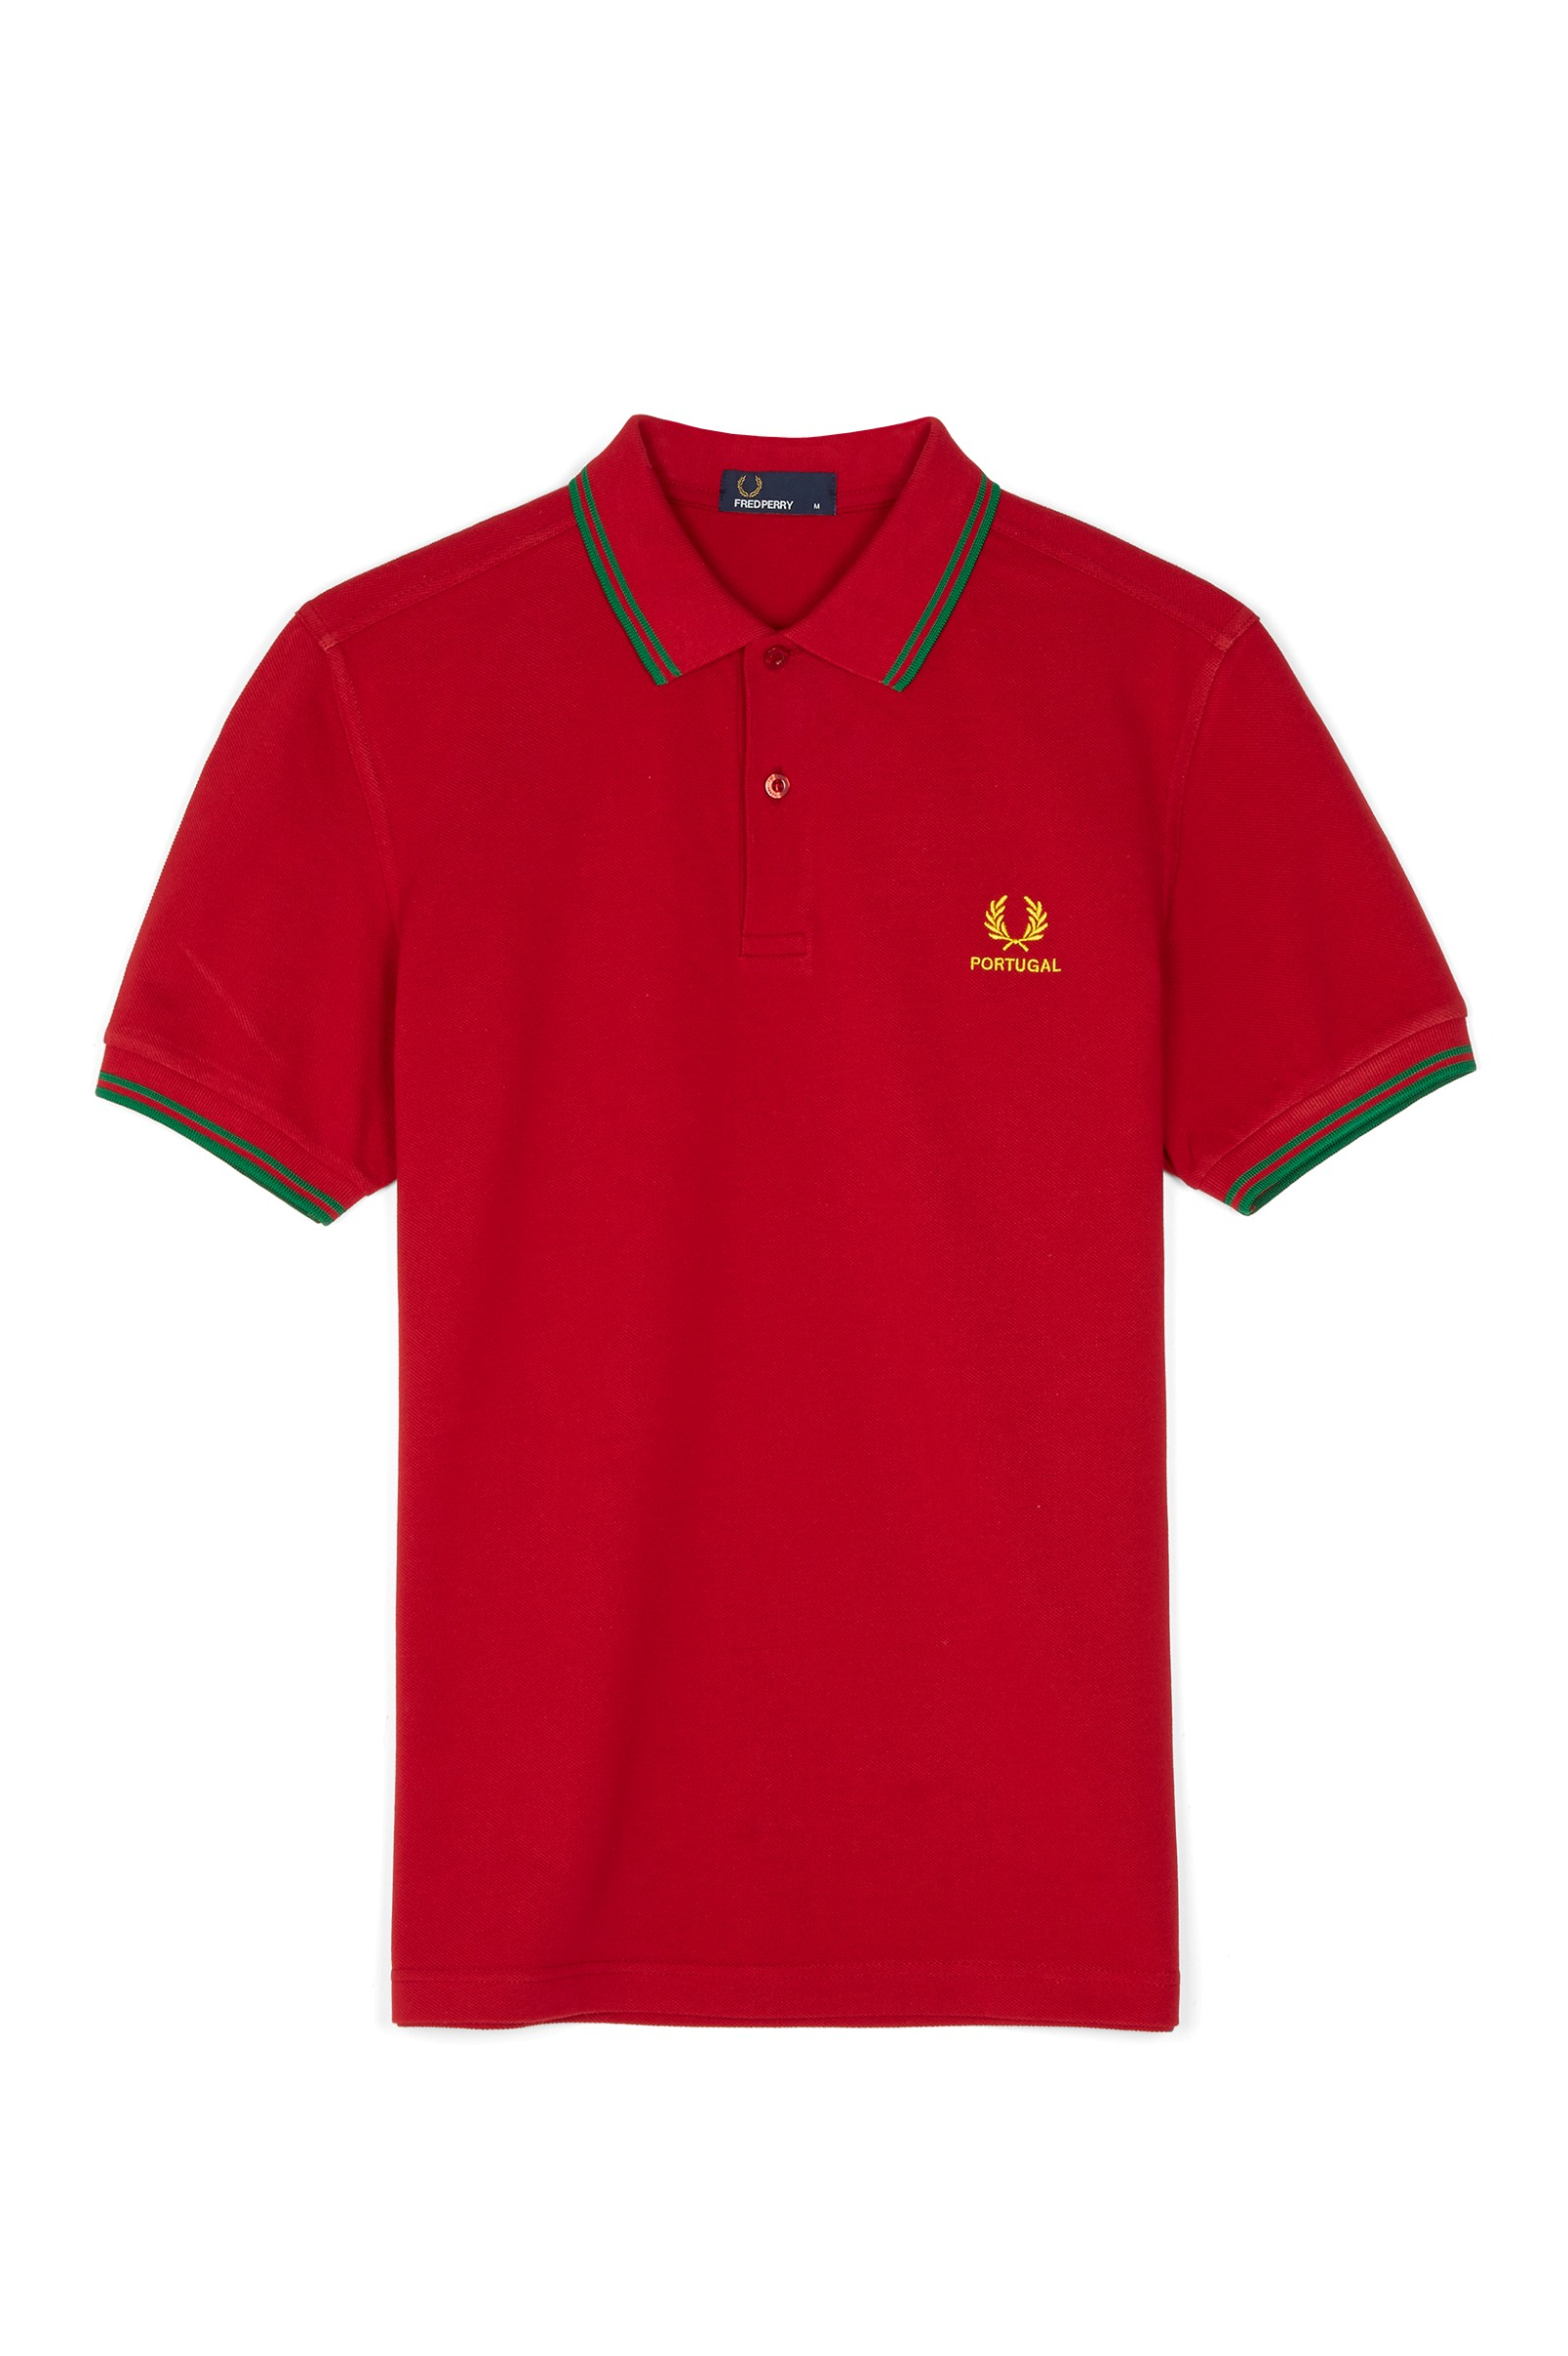 Fred Perry - Portugal - Polo - Rouge - Rouge p6RaxG